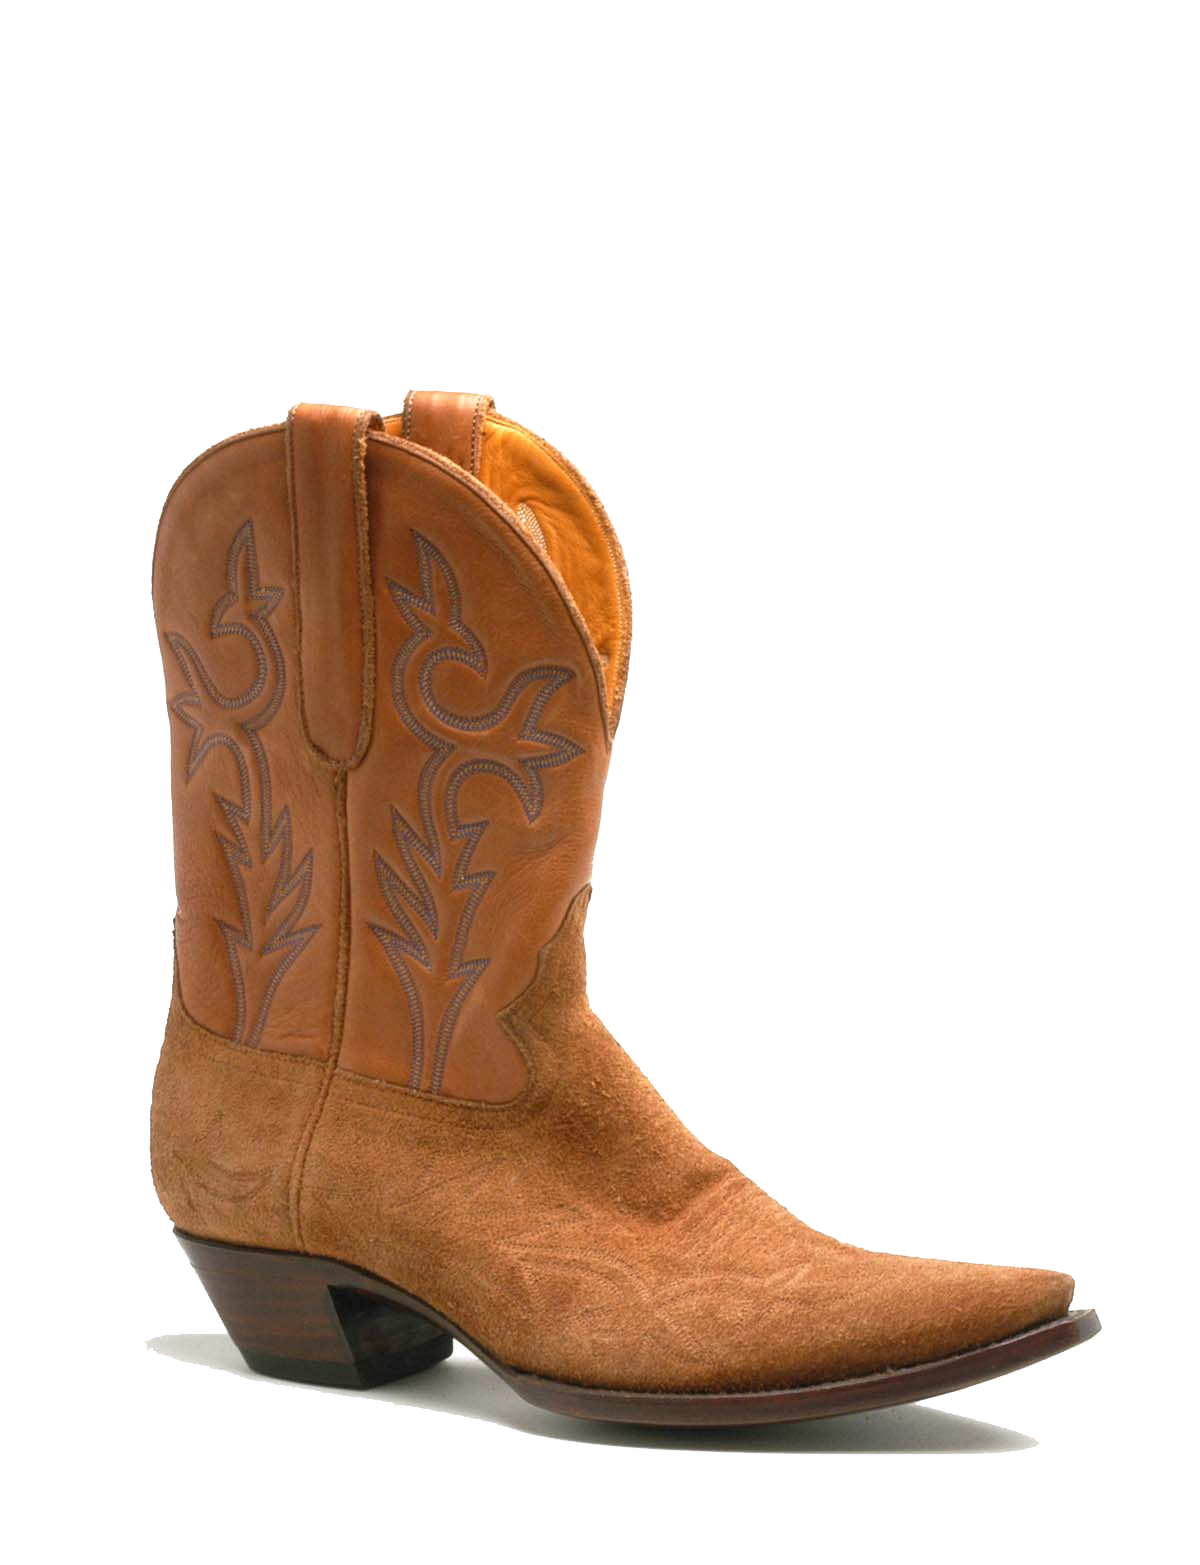 Boot Png PNG Image